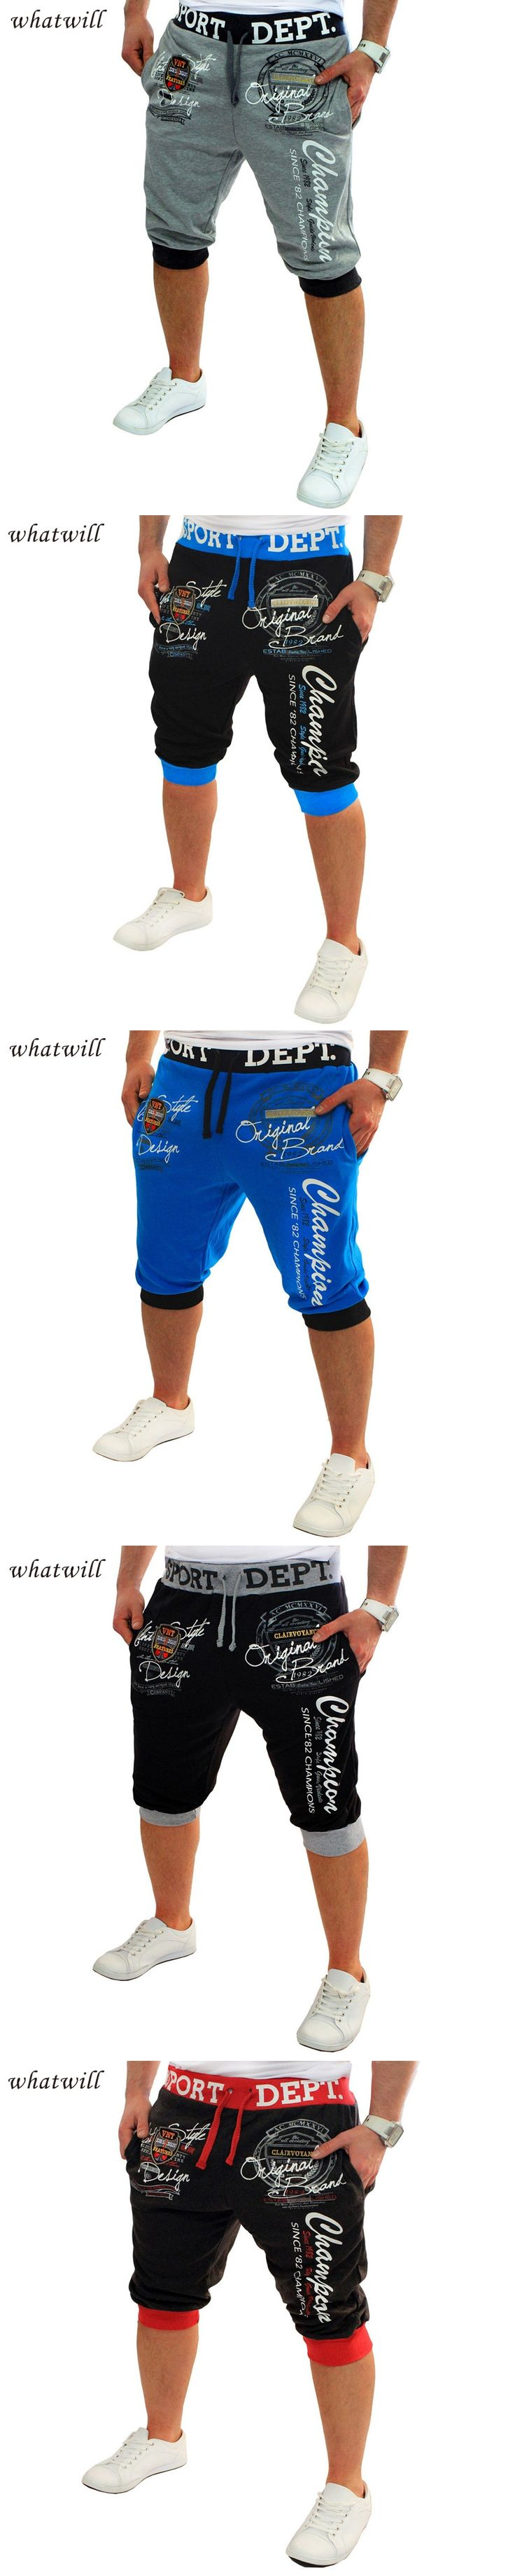 3d digital printed board short men 2017 fashion sweatpants casual shorts trousers homme